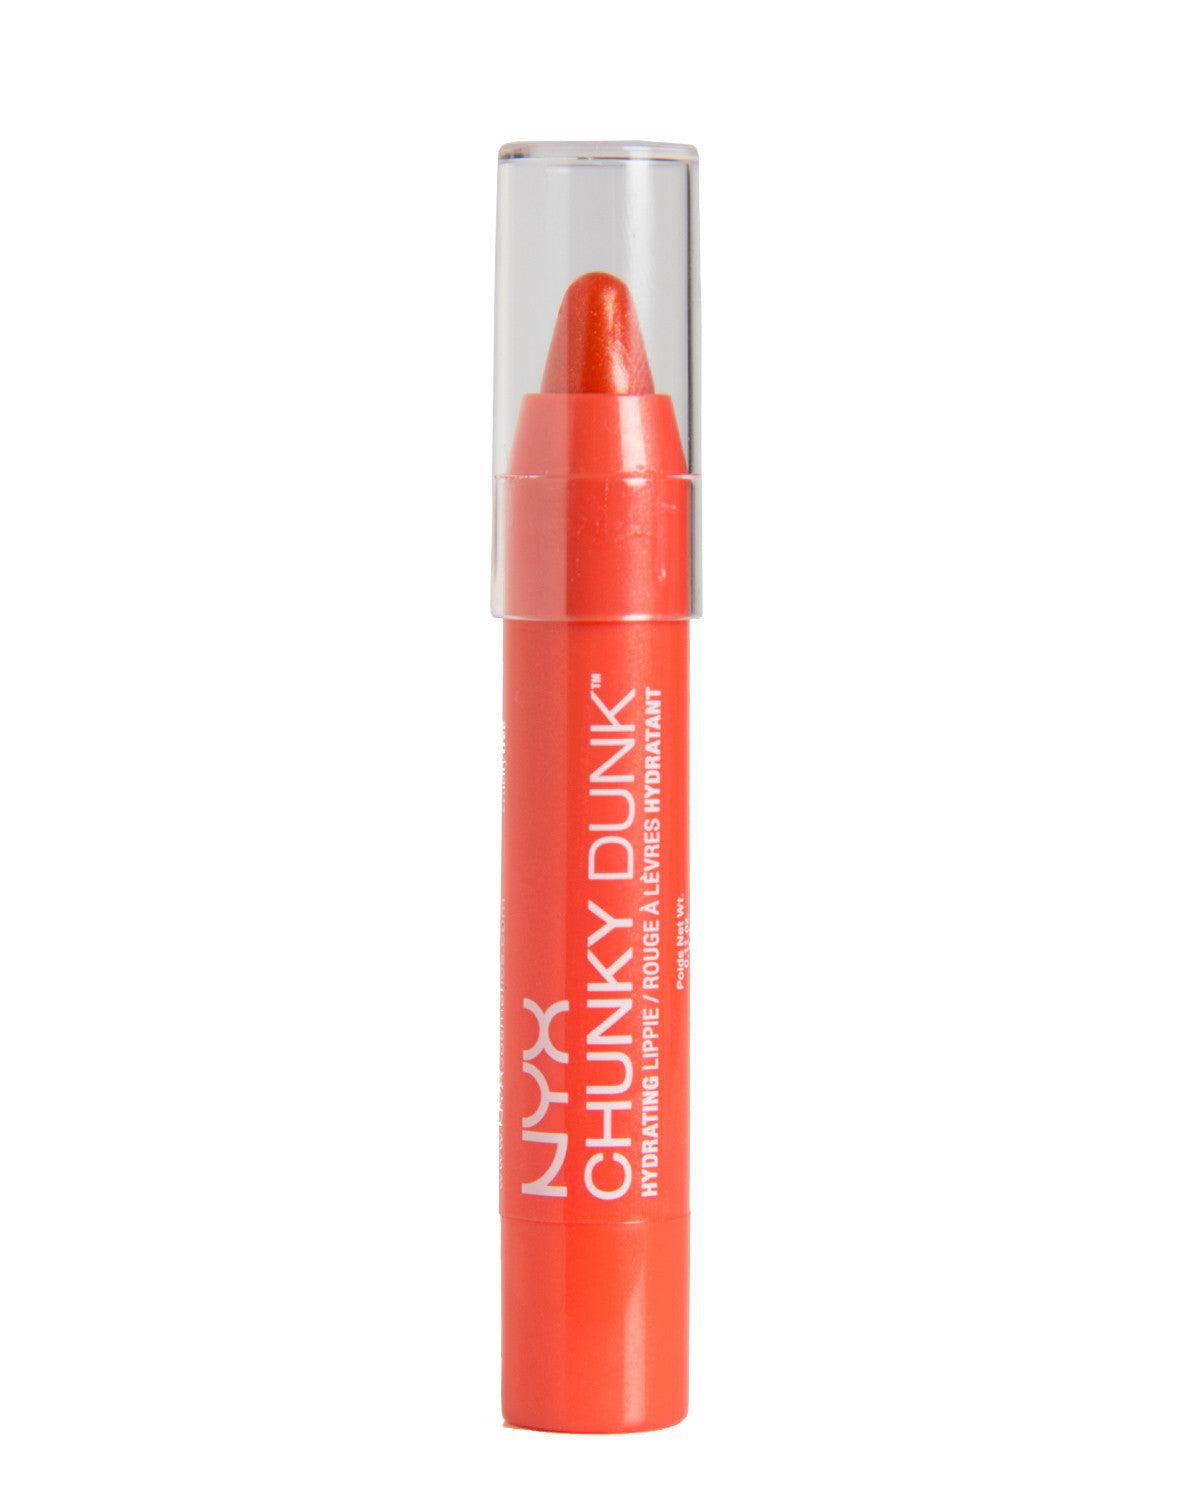 NYX Chunky Dunk - Orange Splash